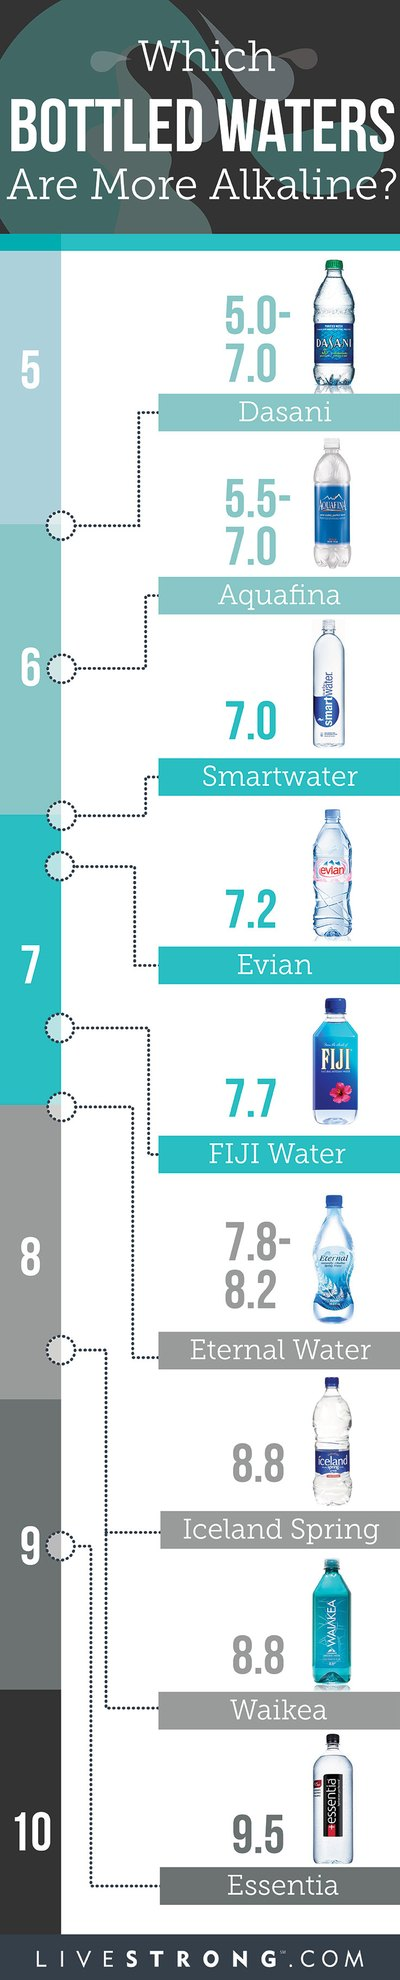 Infographic showing alkalinity of different types of bottled waters.